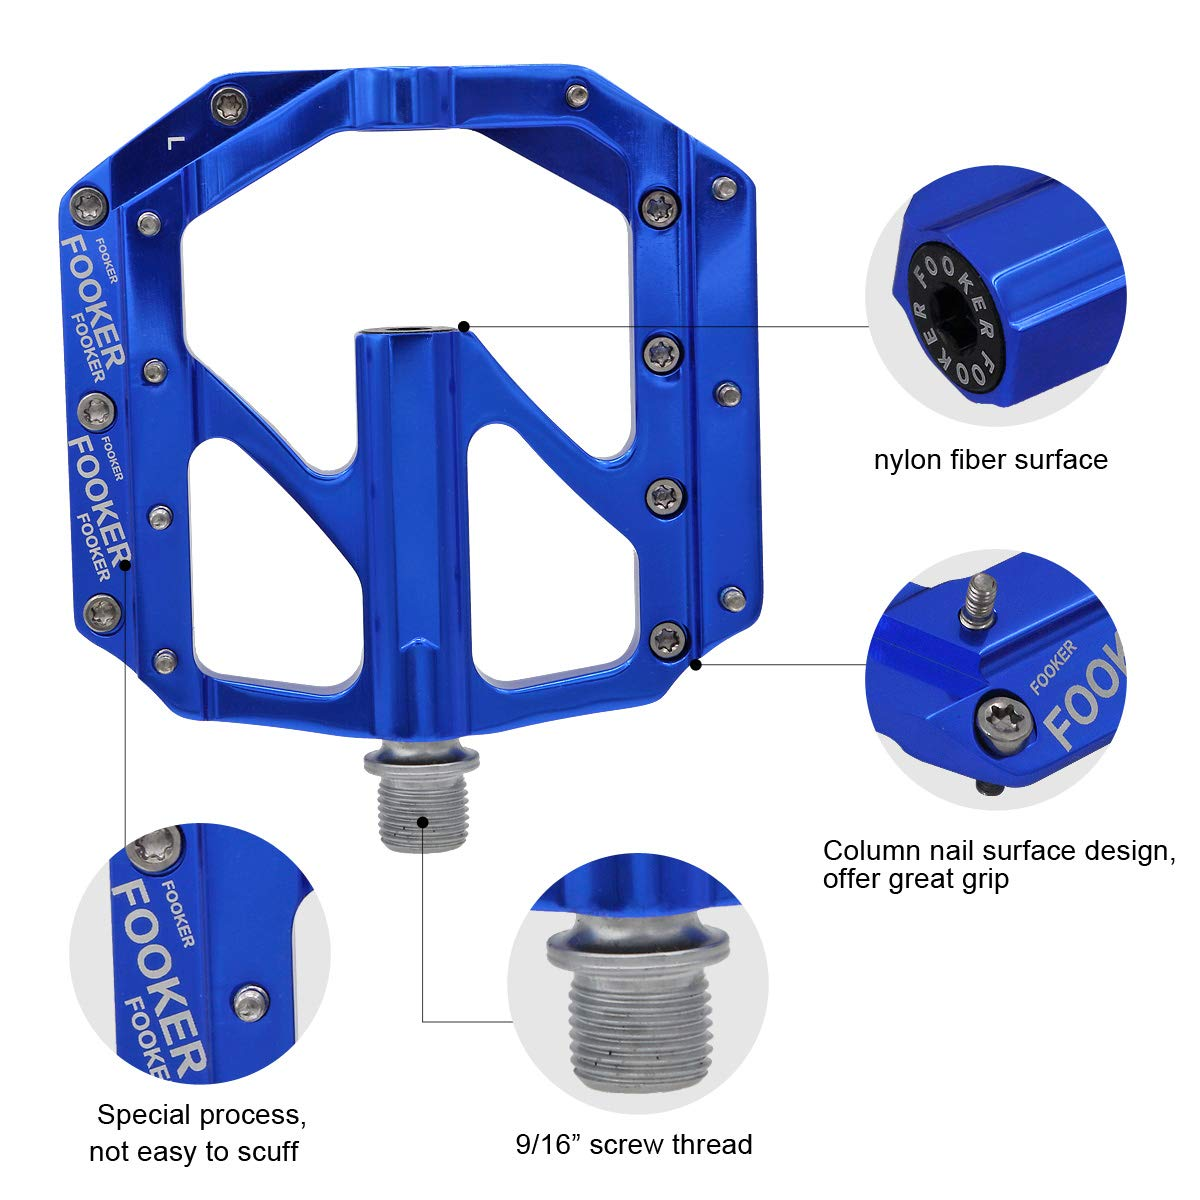 FOOKER Bike Pedals Non-Slip Aluminum Alloy MTB Mountain Bike Pedals 3 Bearing 9/16'' for Road BMX MTB Fixie Bikes by FOOKER (Image #6)